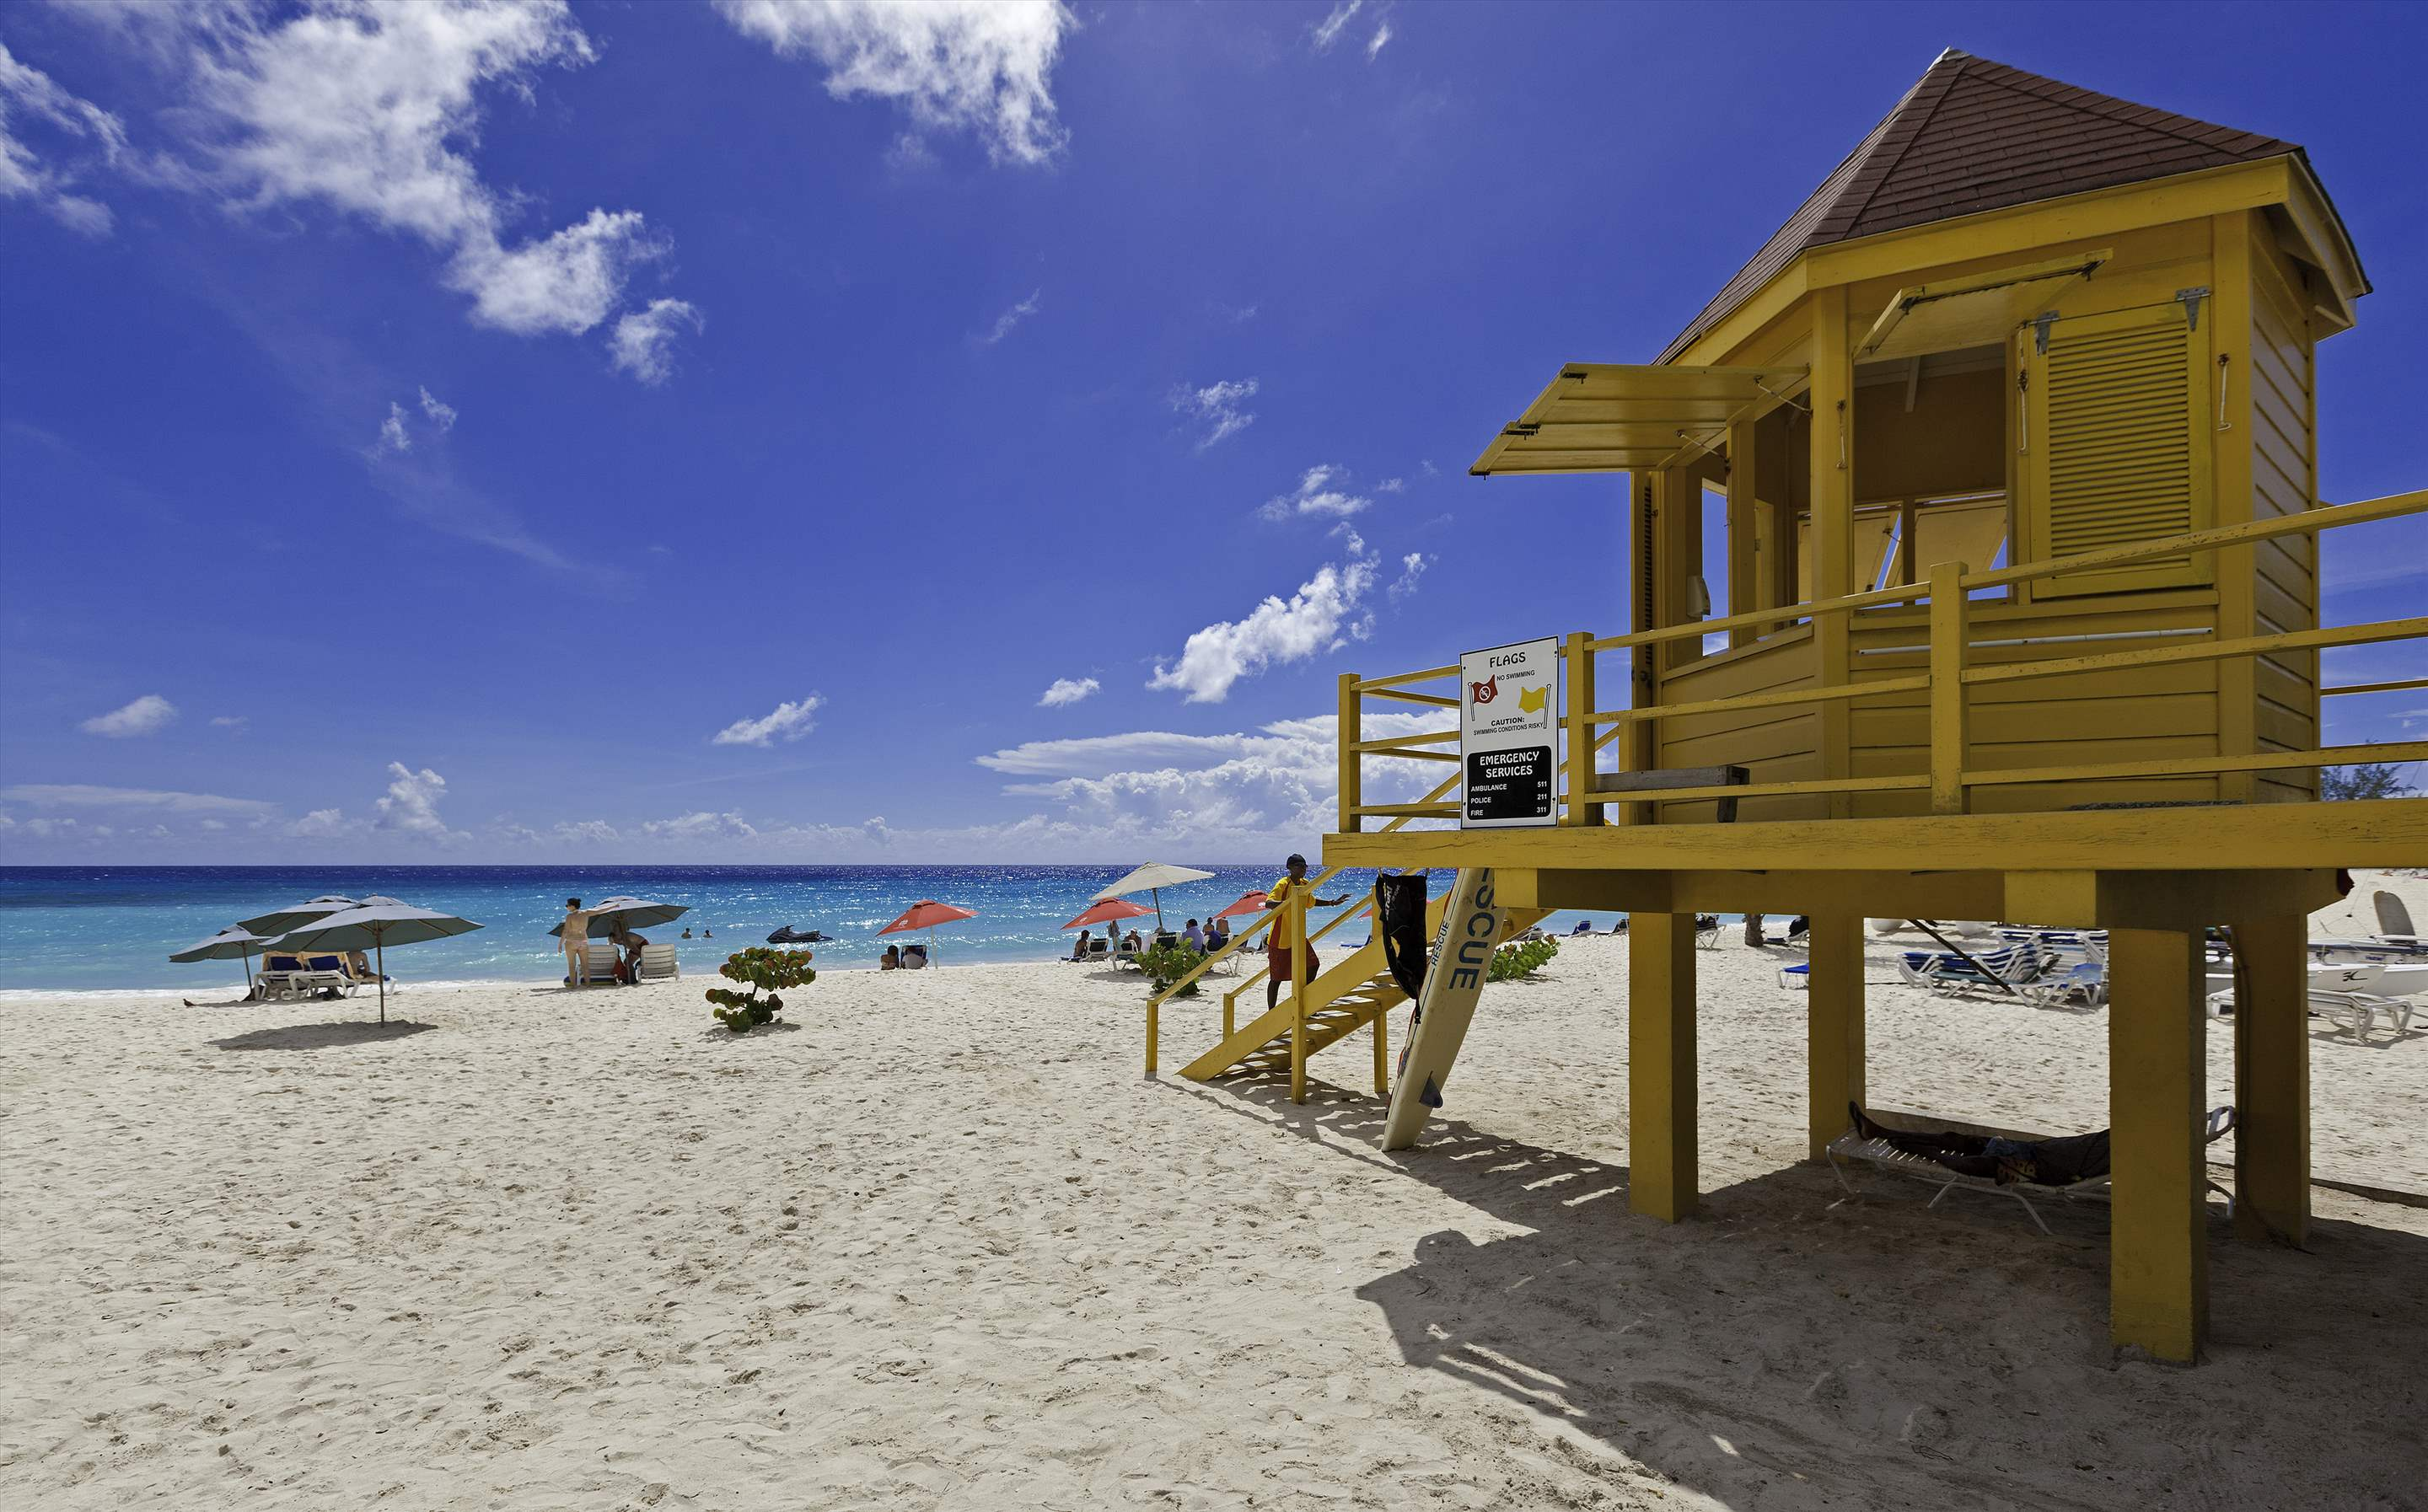 Sapphire Beach 309, 2 bedroom, 2 bedroom apartment in St. Lawrence Gap & South Coast, Barbados Photo #12